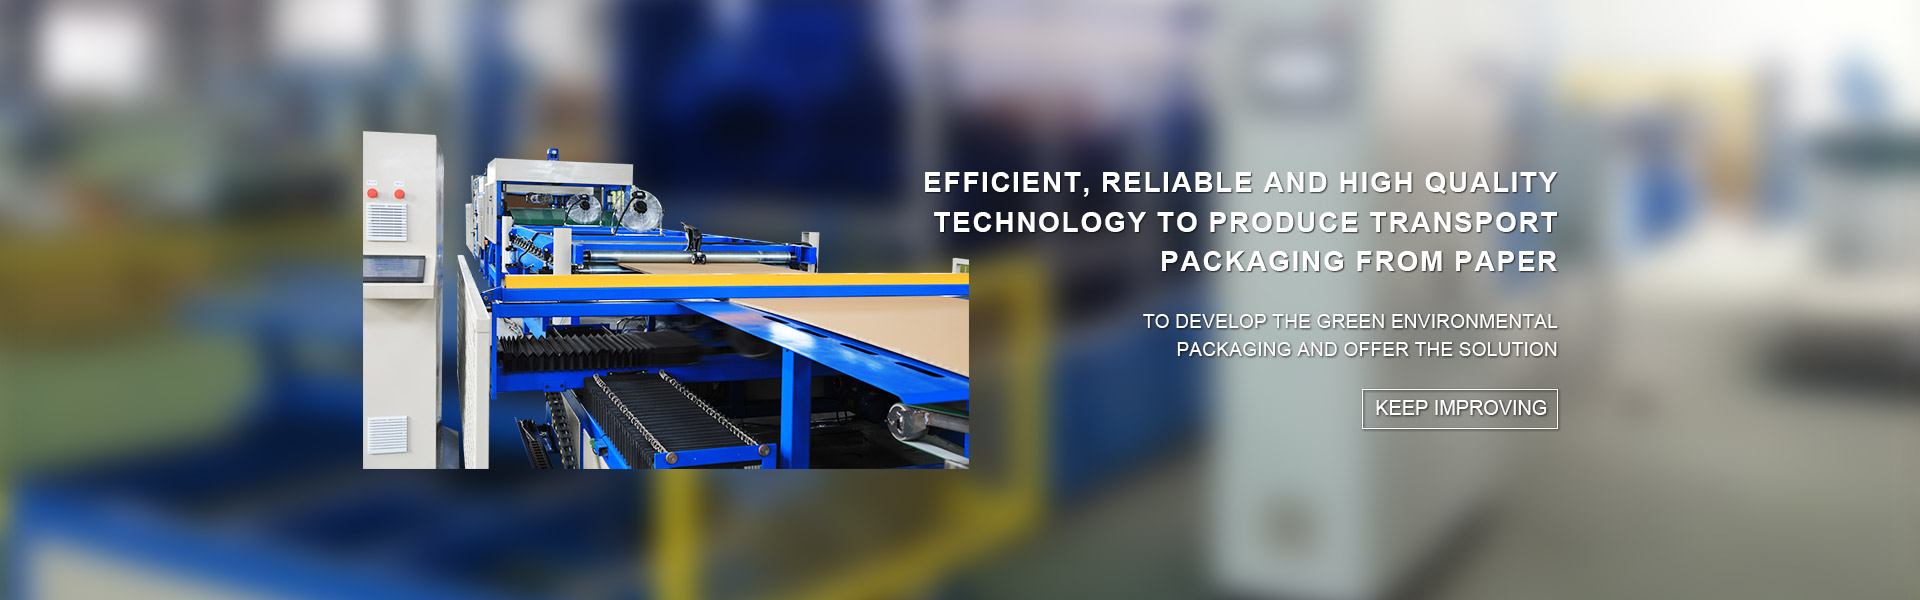 EFFICIENT,RELIABLE AND HIGH QUALITY TECHNOLOGY TO PRODUCE TRANSPORT PACKAGING FROM PAPER